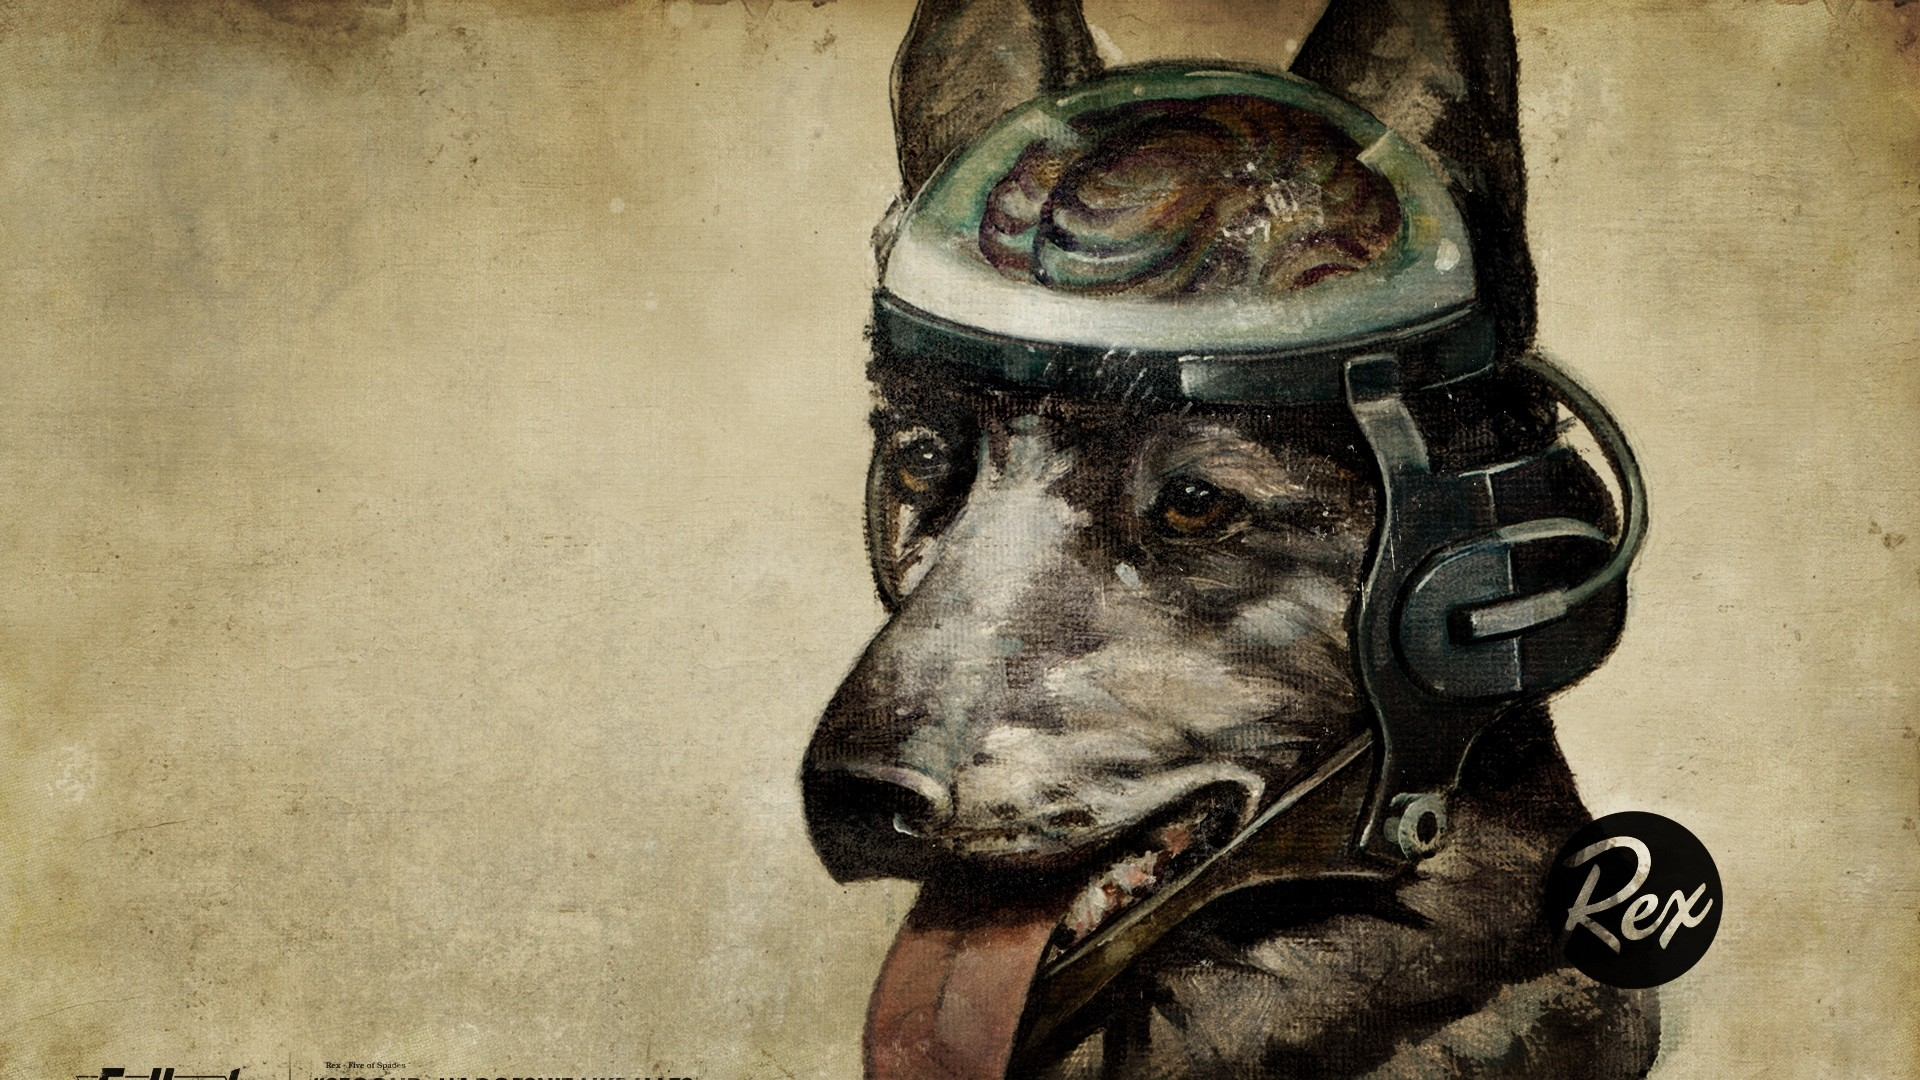 … soldier · fallout, quote, dog